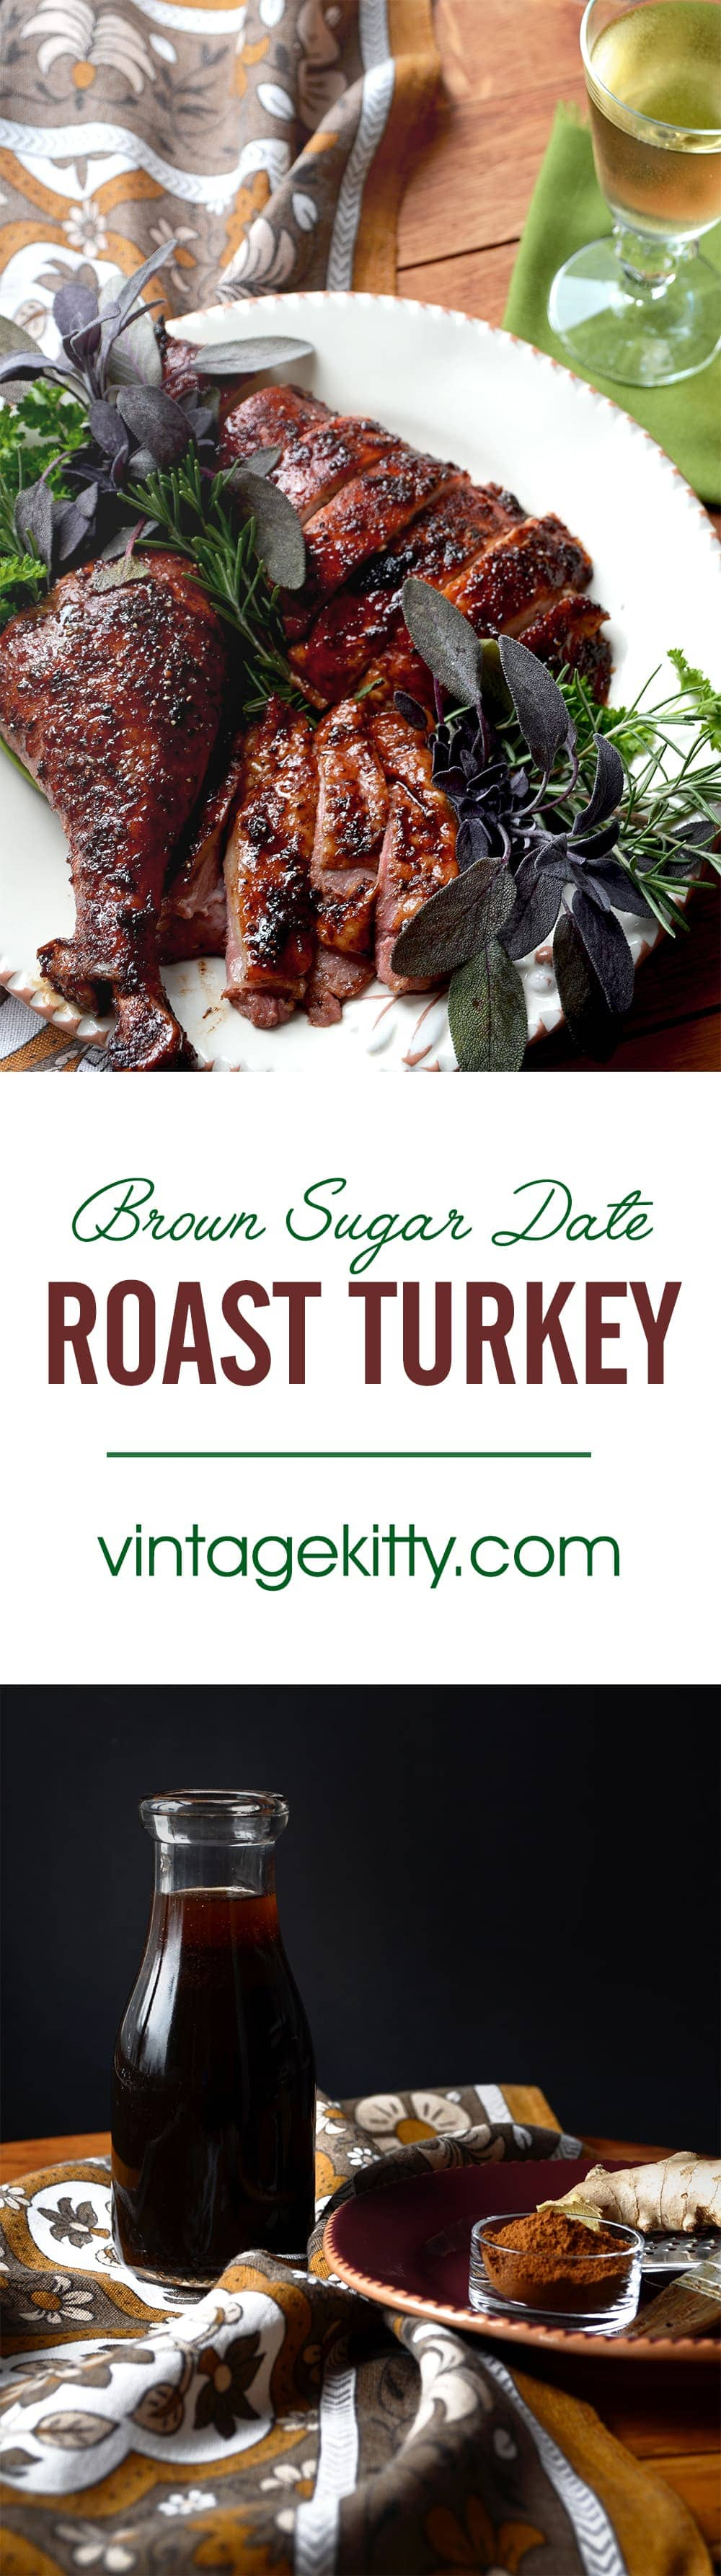 Brown Sugar Date Roast Turkey is a sweet way to serve up your next holiday dinner. Find out tricks to keep your turkey moist and flavorful and get this recipe for a sweet, gingery turkey baste. | vintagekitty.com